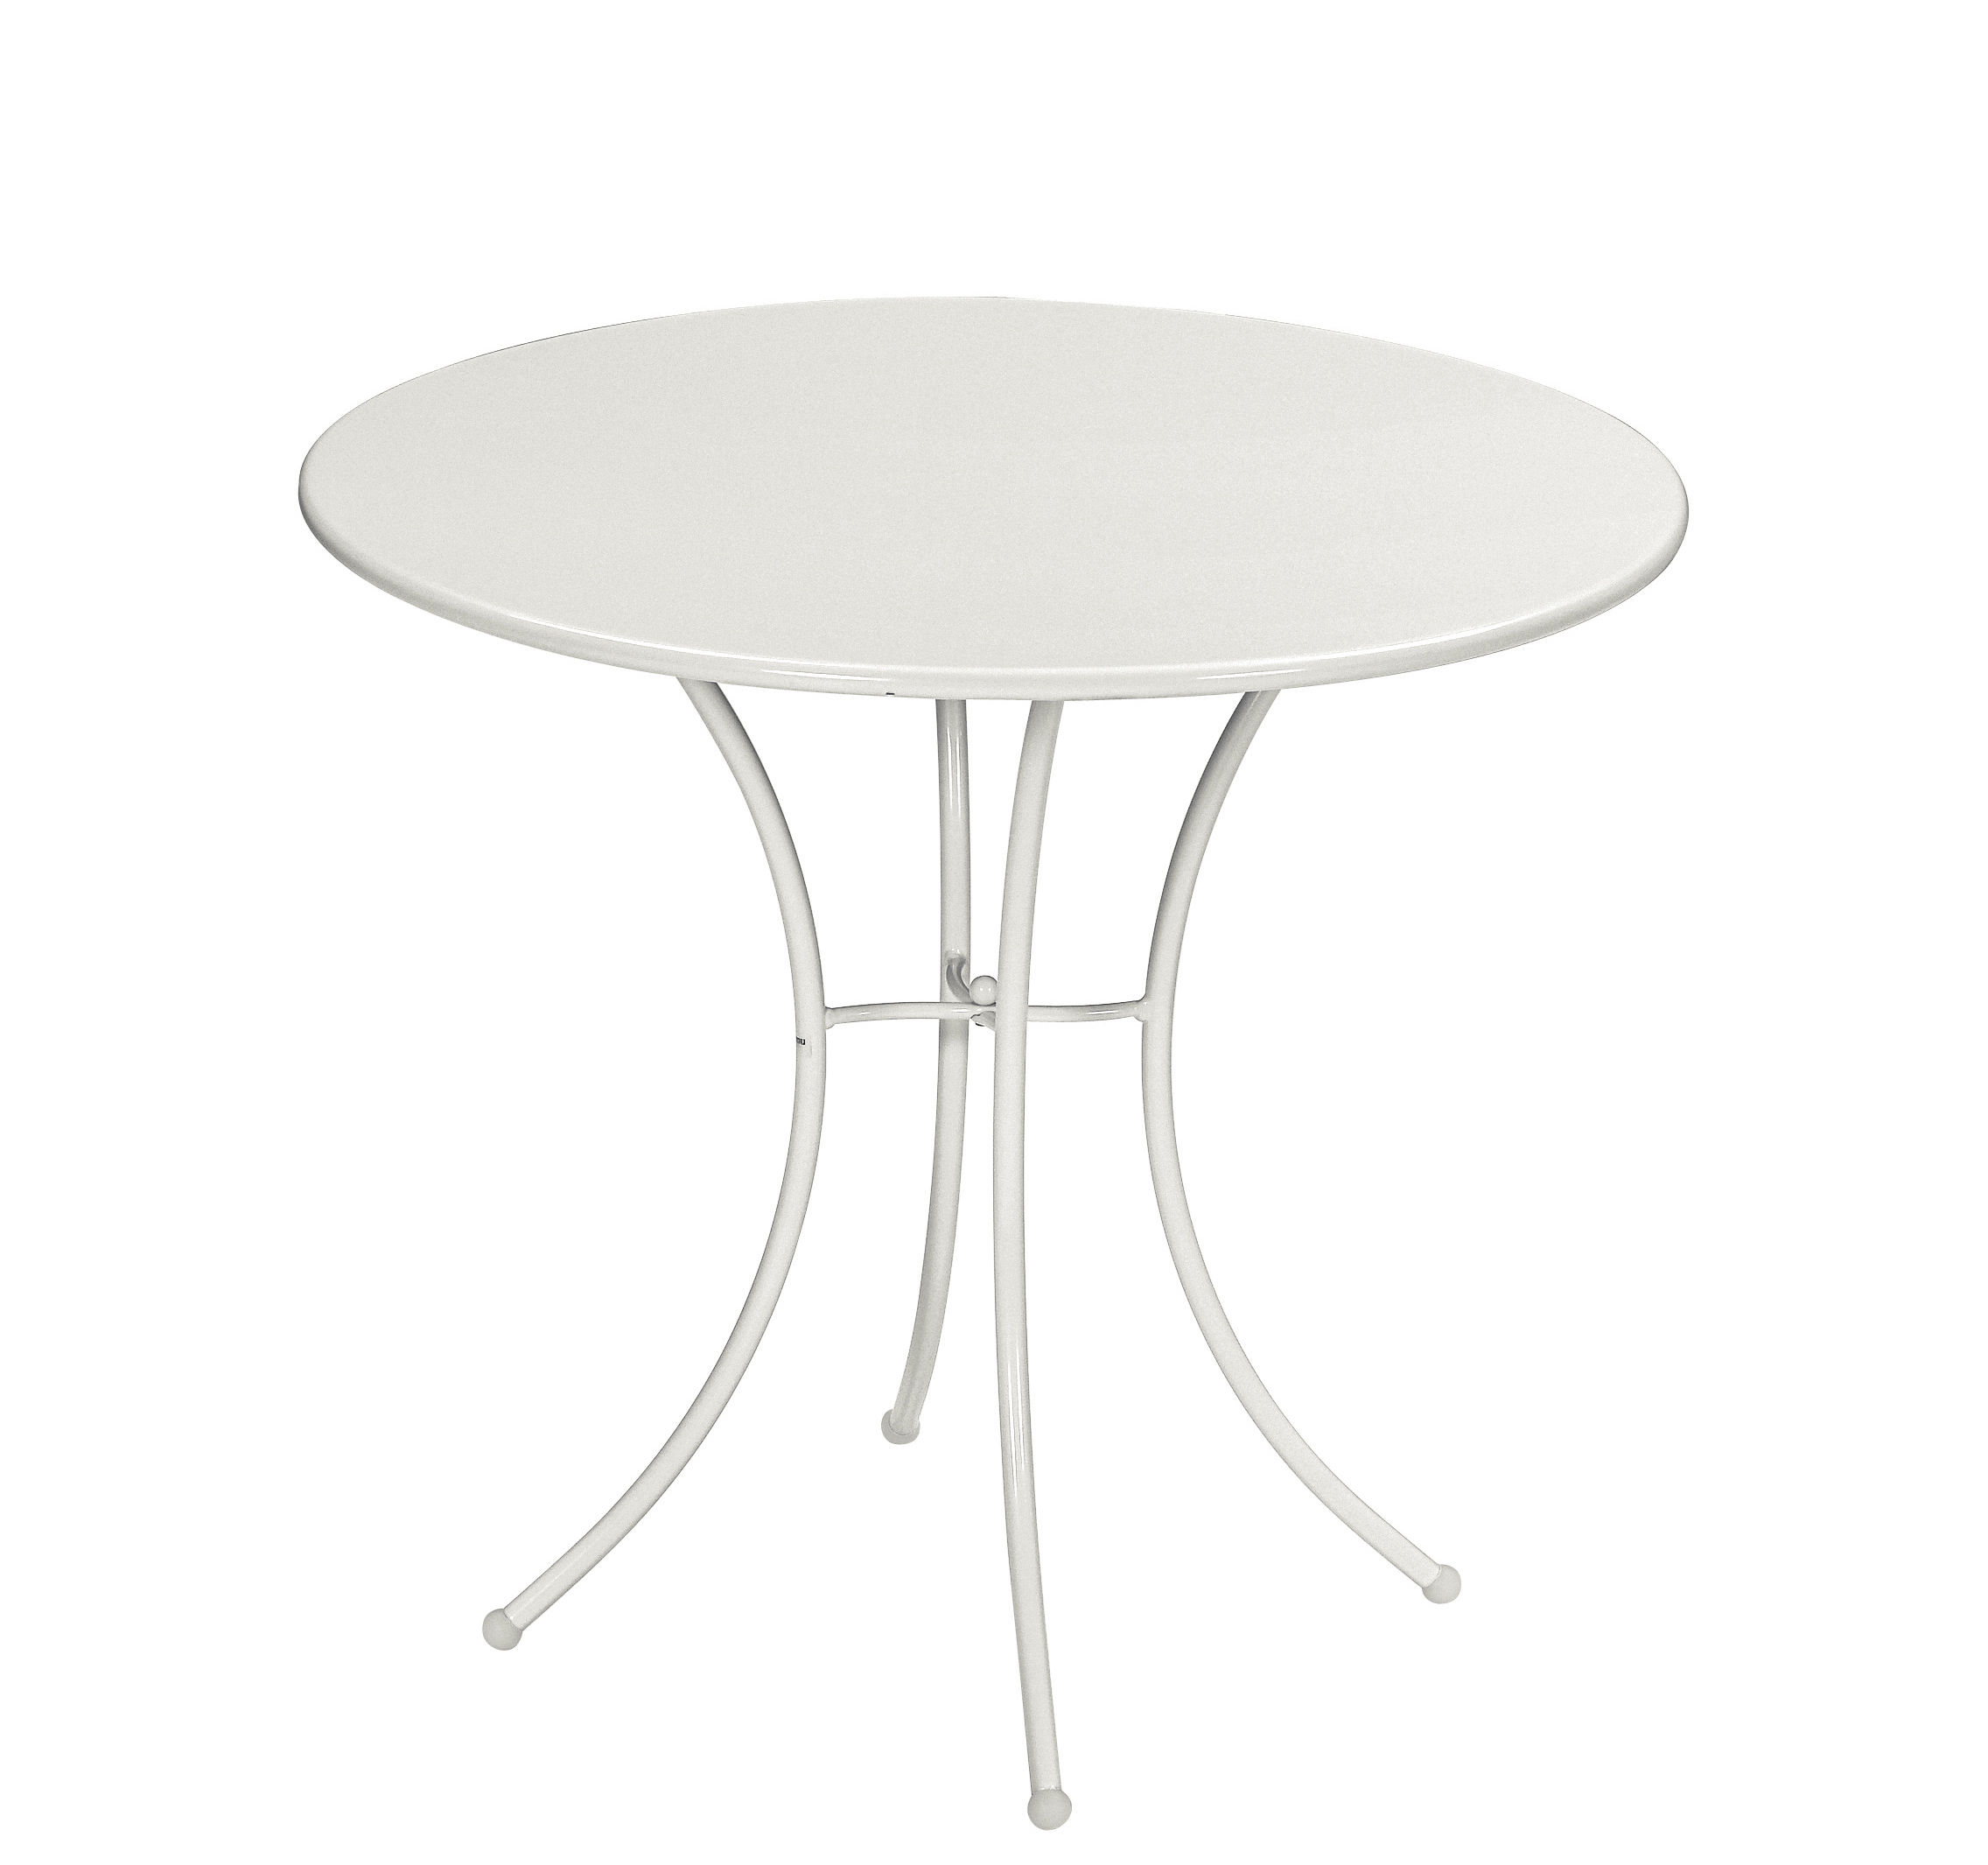 Table Ronde 80 Cm Table Ronde Pigalle Métal Ø 80 Cm Emu